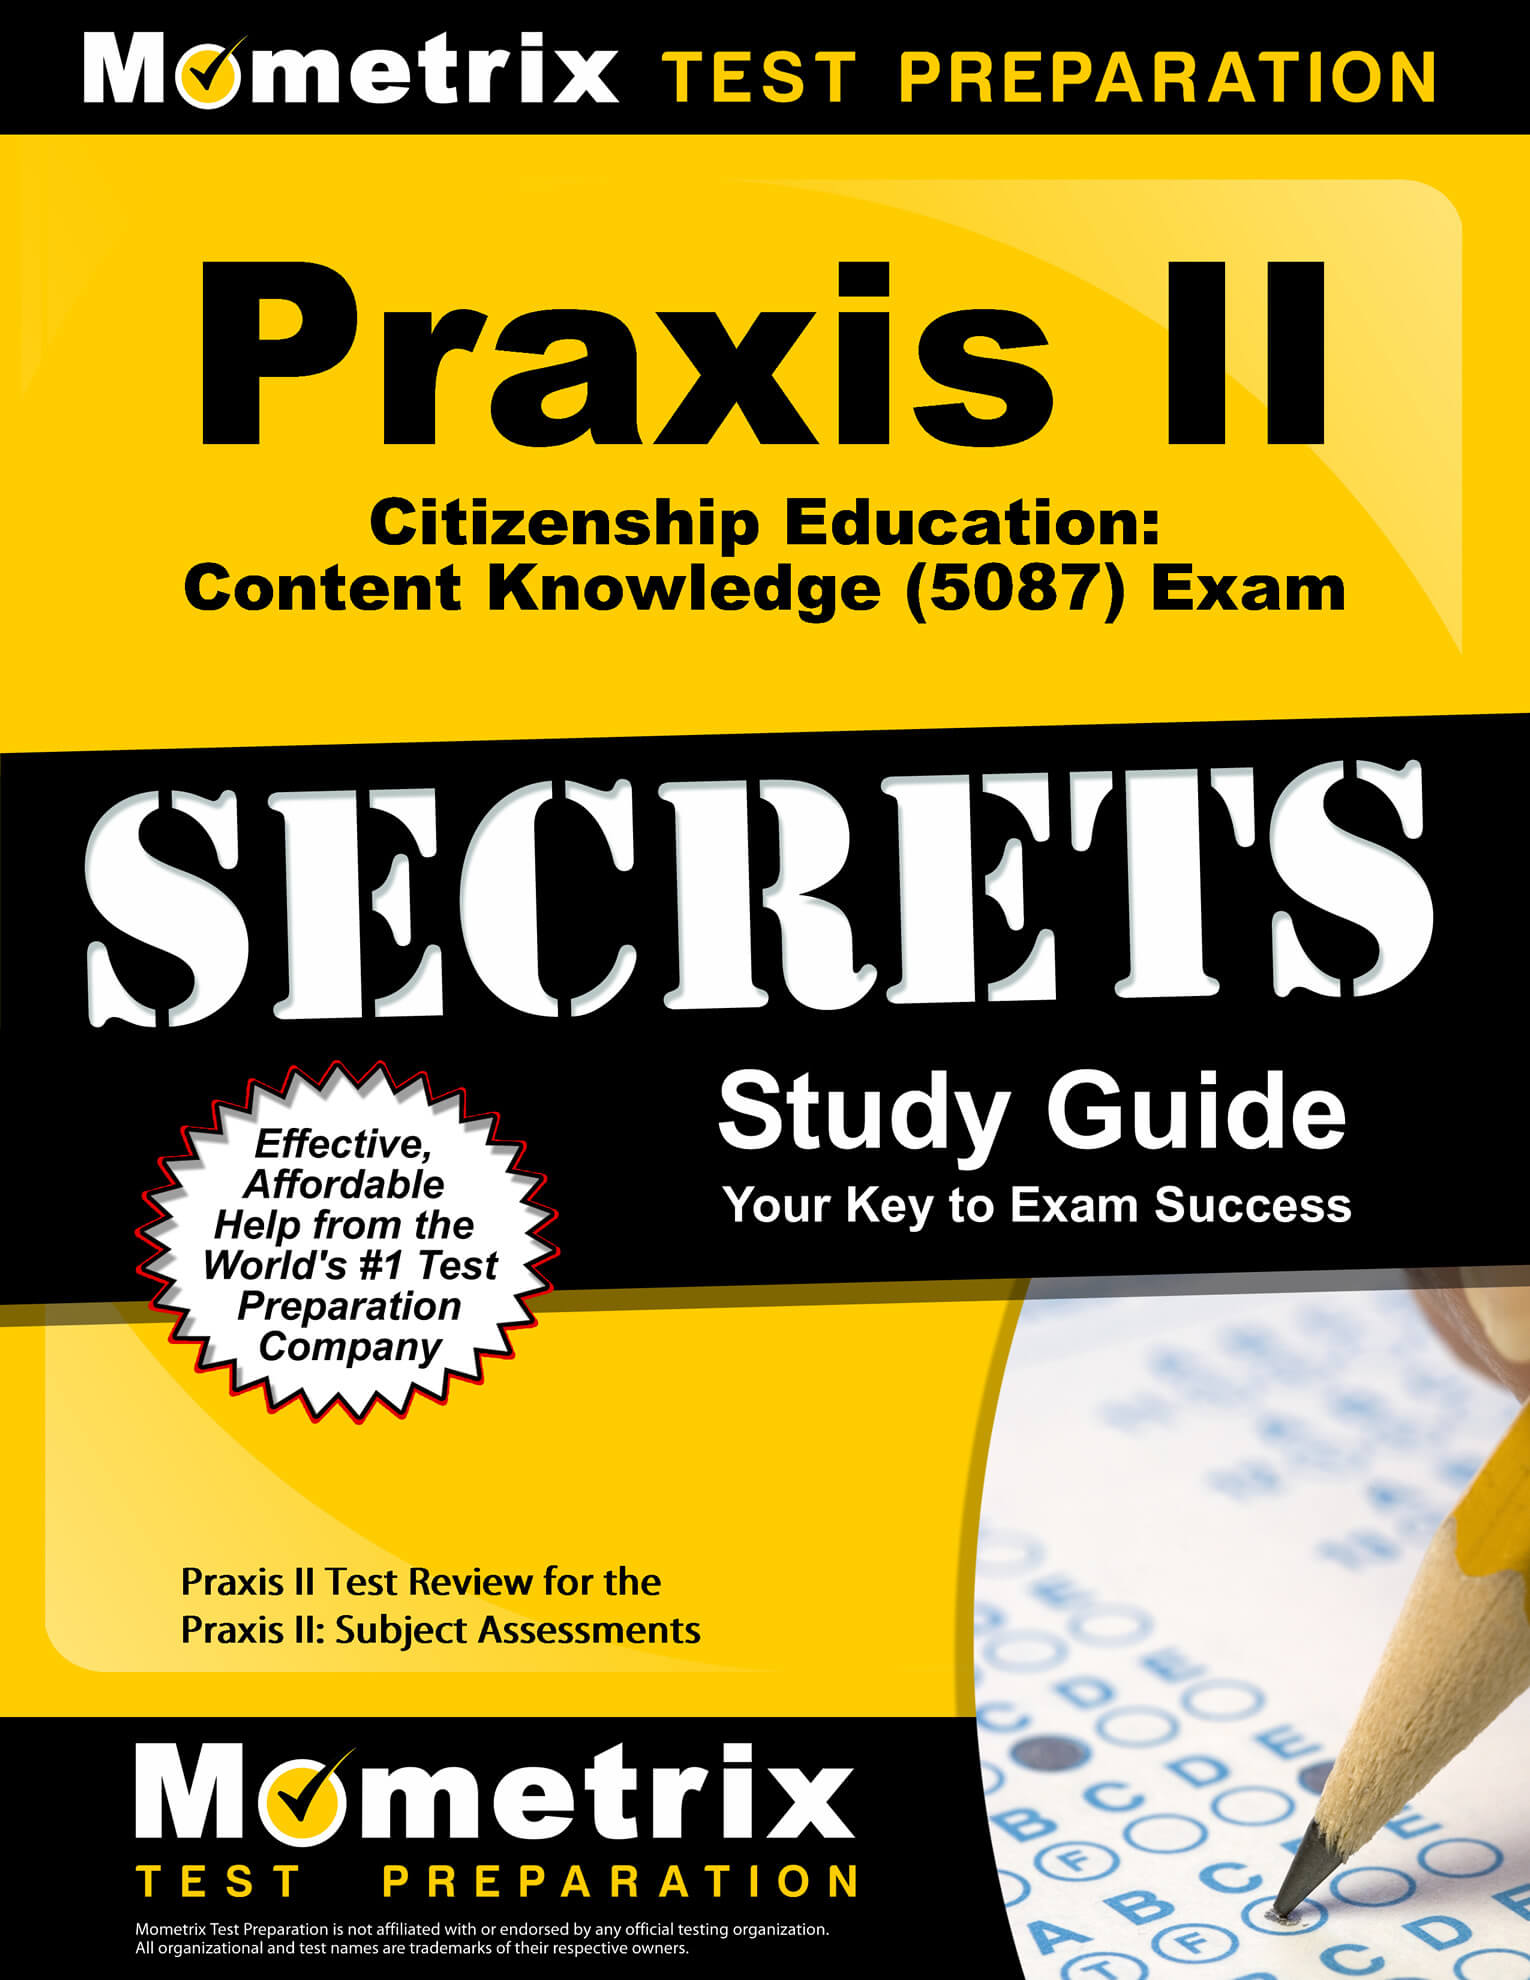 Praxis II Citizenship Education: Content Knowledge Study Guide